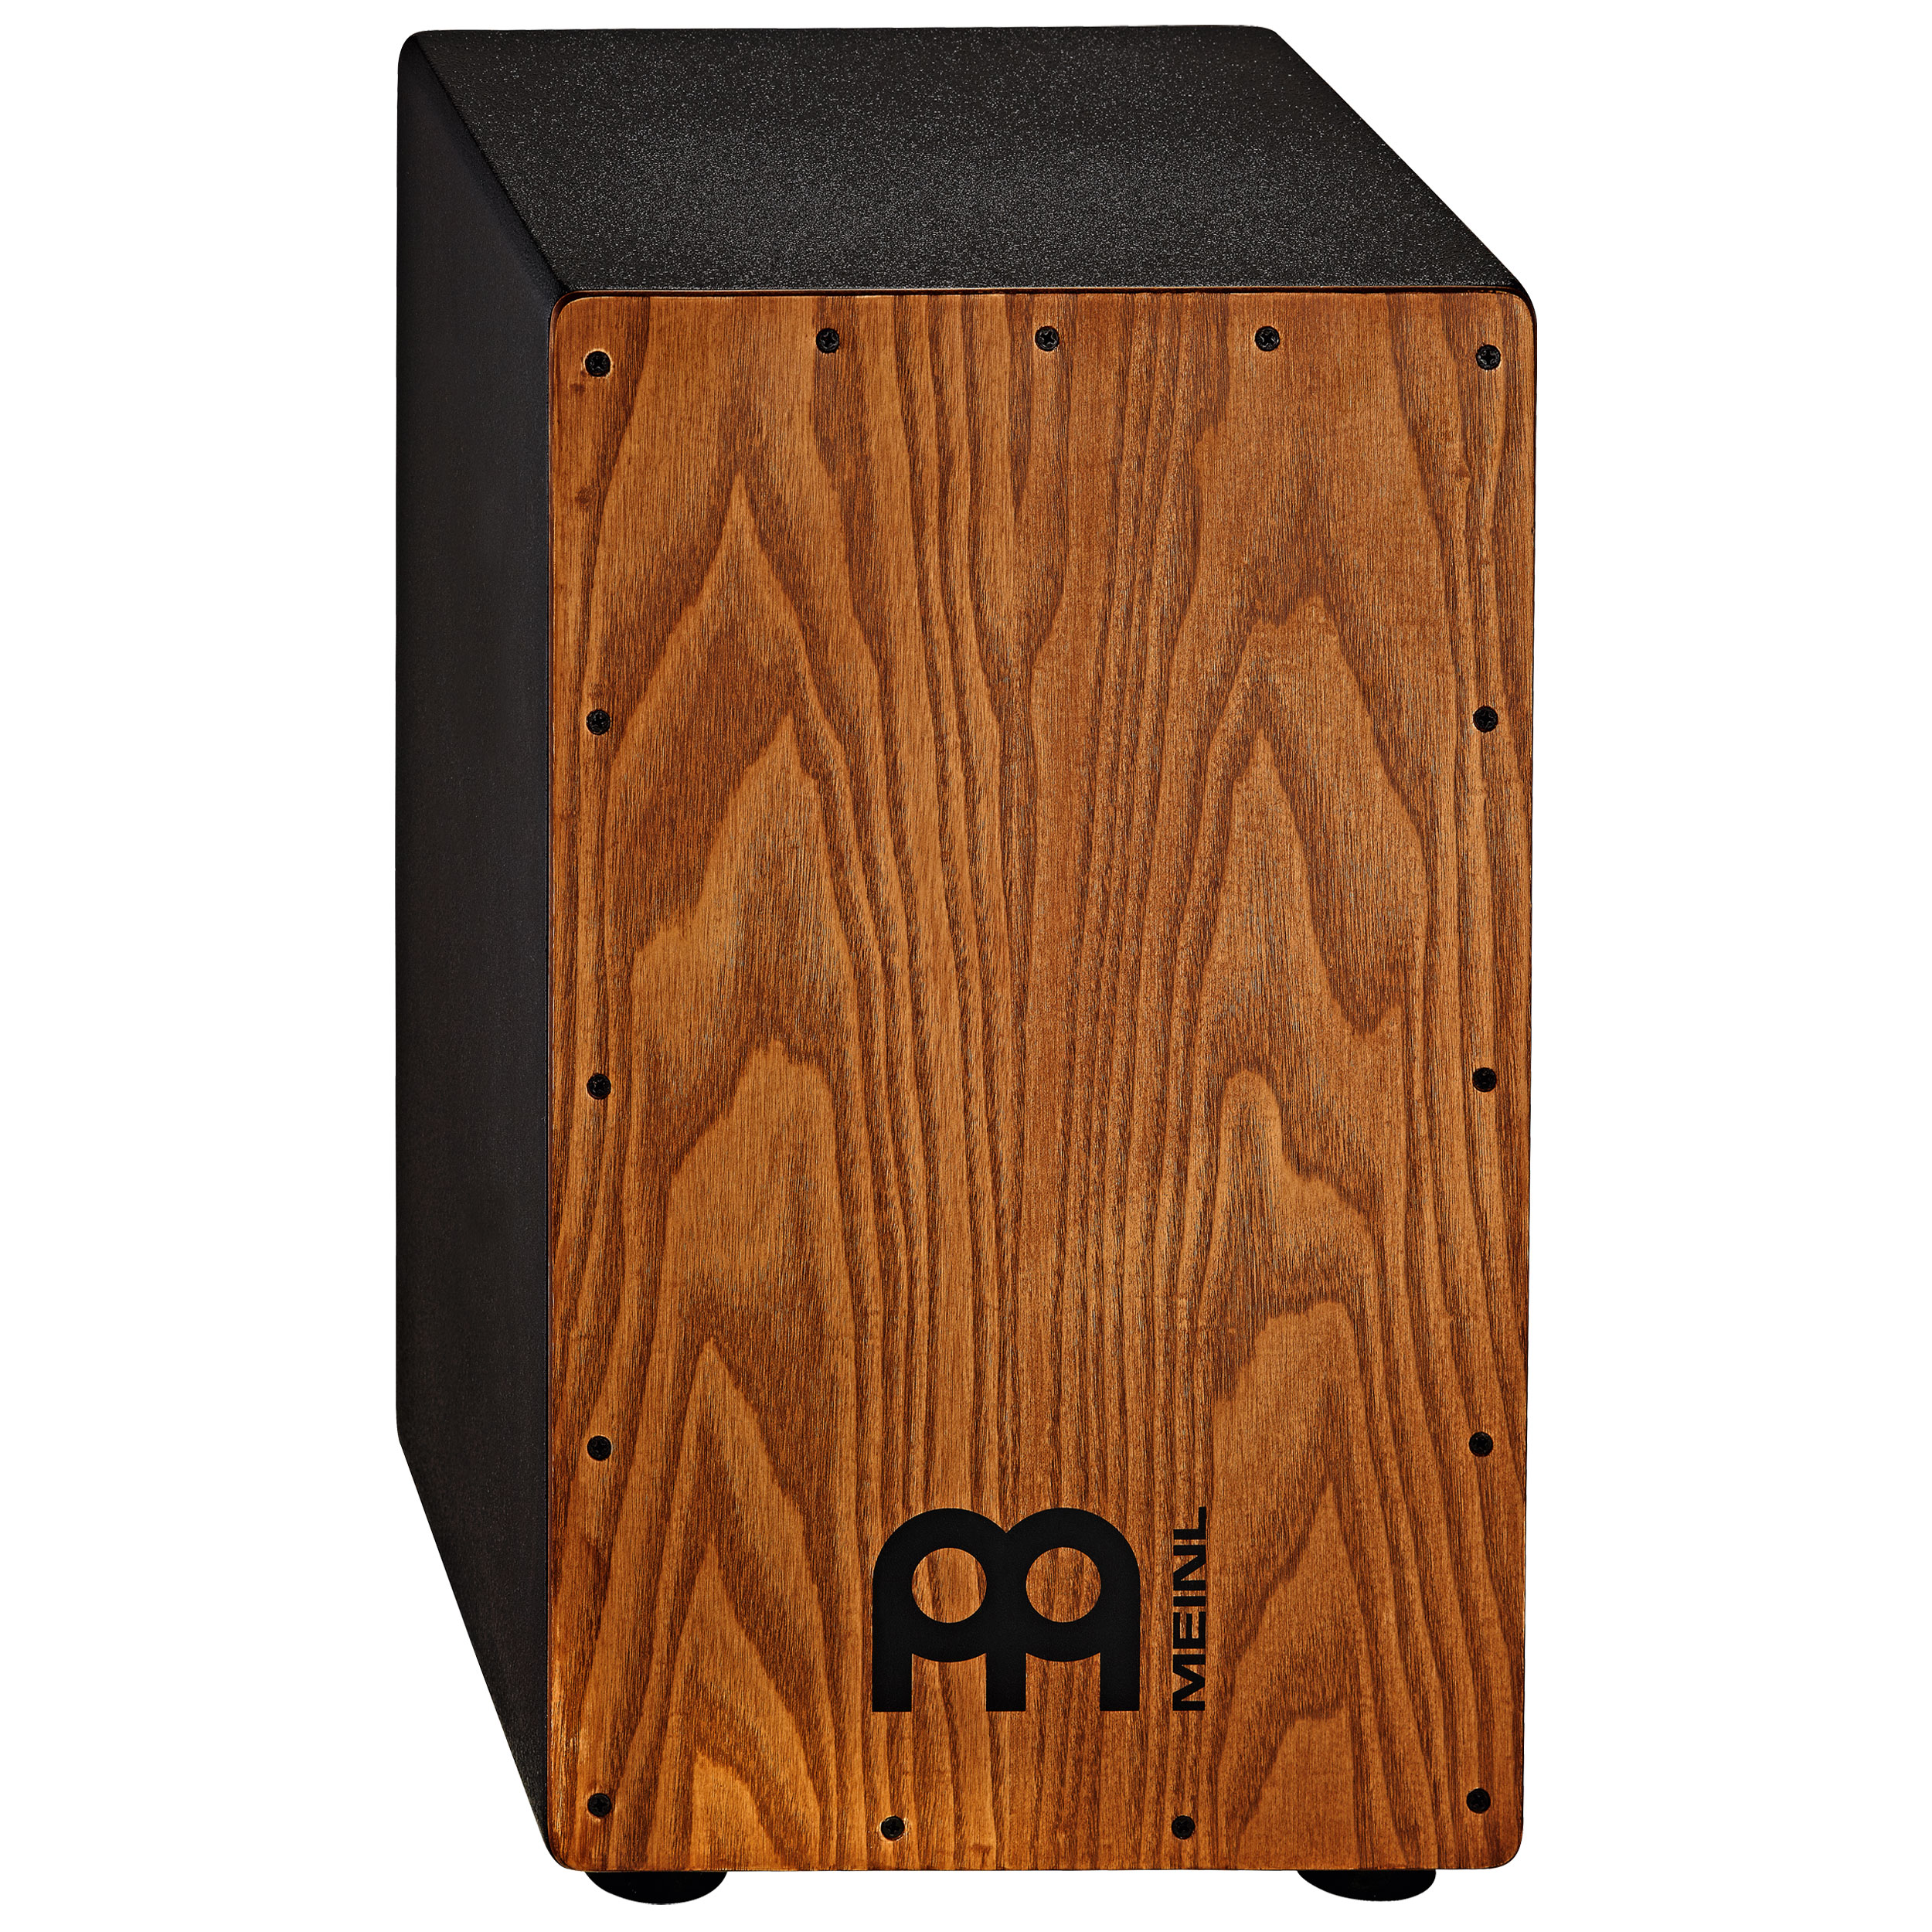 "Meinl 11.75"" x 19.75"" x 11.75"" Headliner Cajon with Stained American White Ash Frontplate"